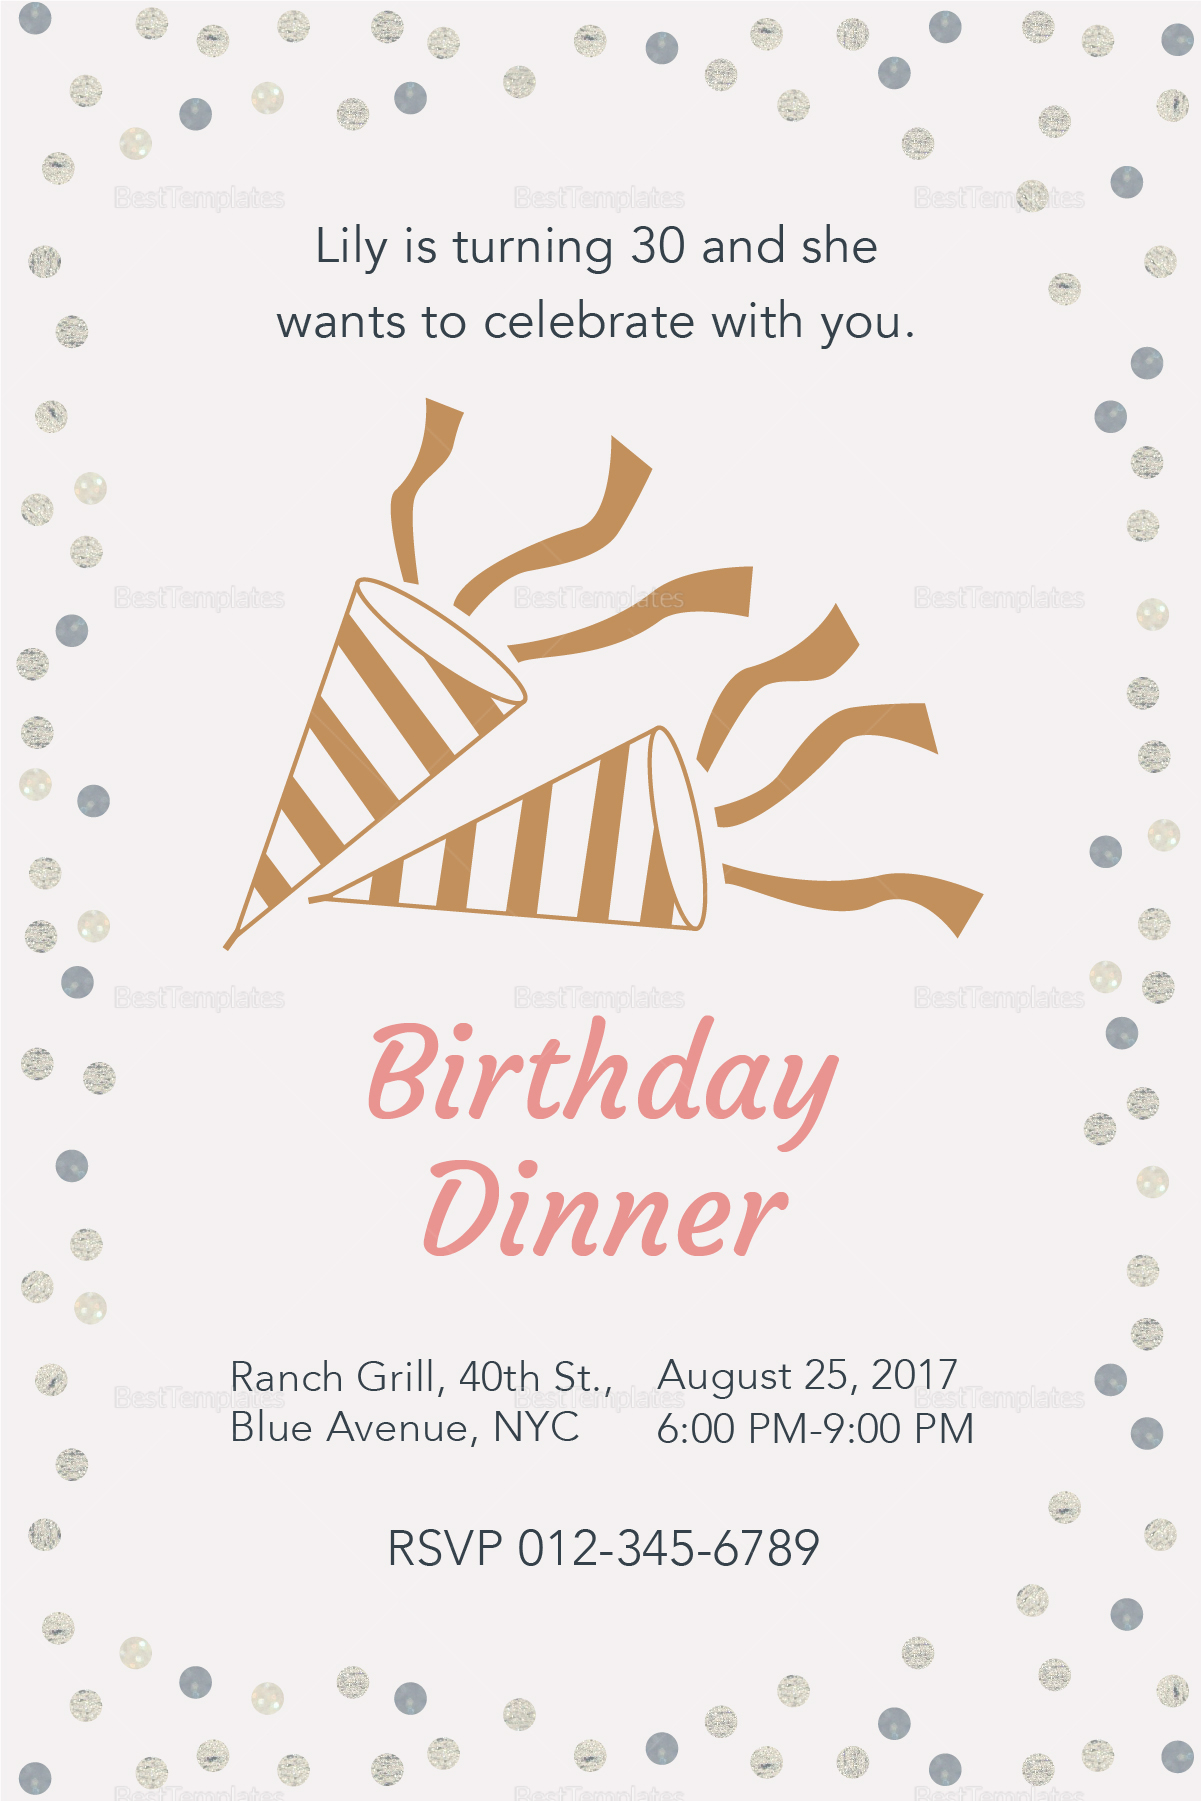 birthday dinner invitation design template in psd  word